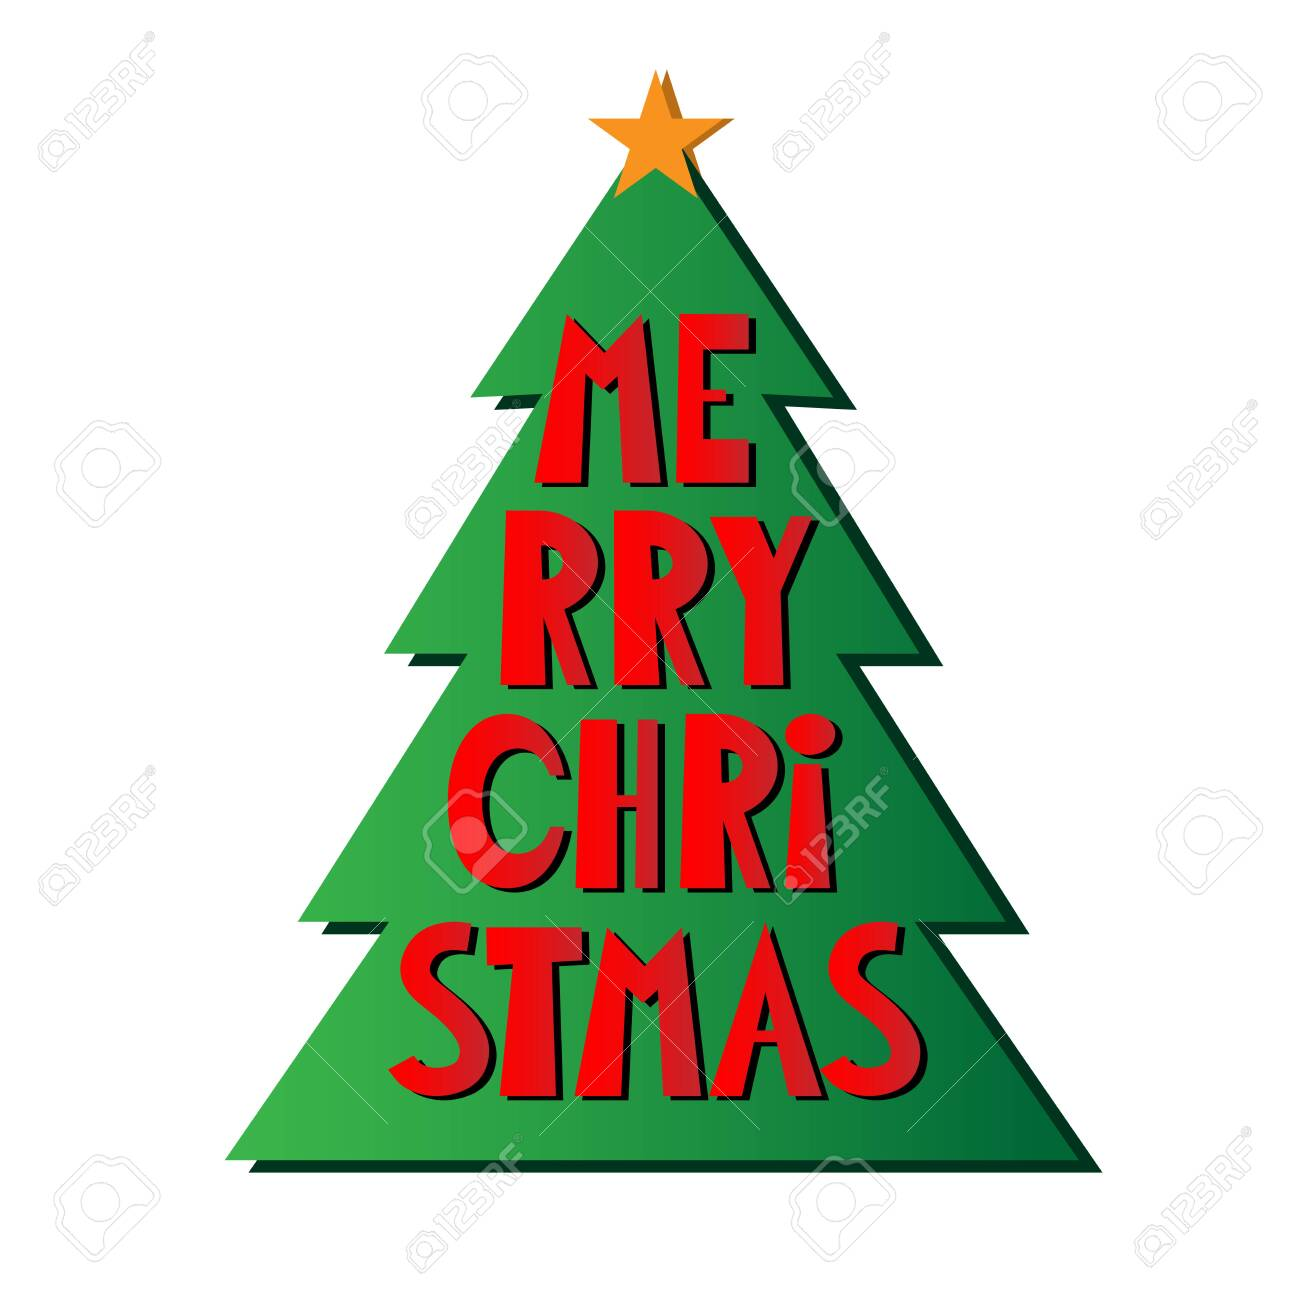 Simple Cartoon Xmas Tree With Star And Text Merry Christmas Vector Royalty Free Cliparts Vectors And Stock Illustration Image 124289106 Take a look at our large collection of festive coloring sheets. simple cartoon xmas tree with star and text merry christmas vector